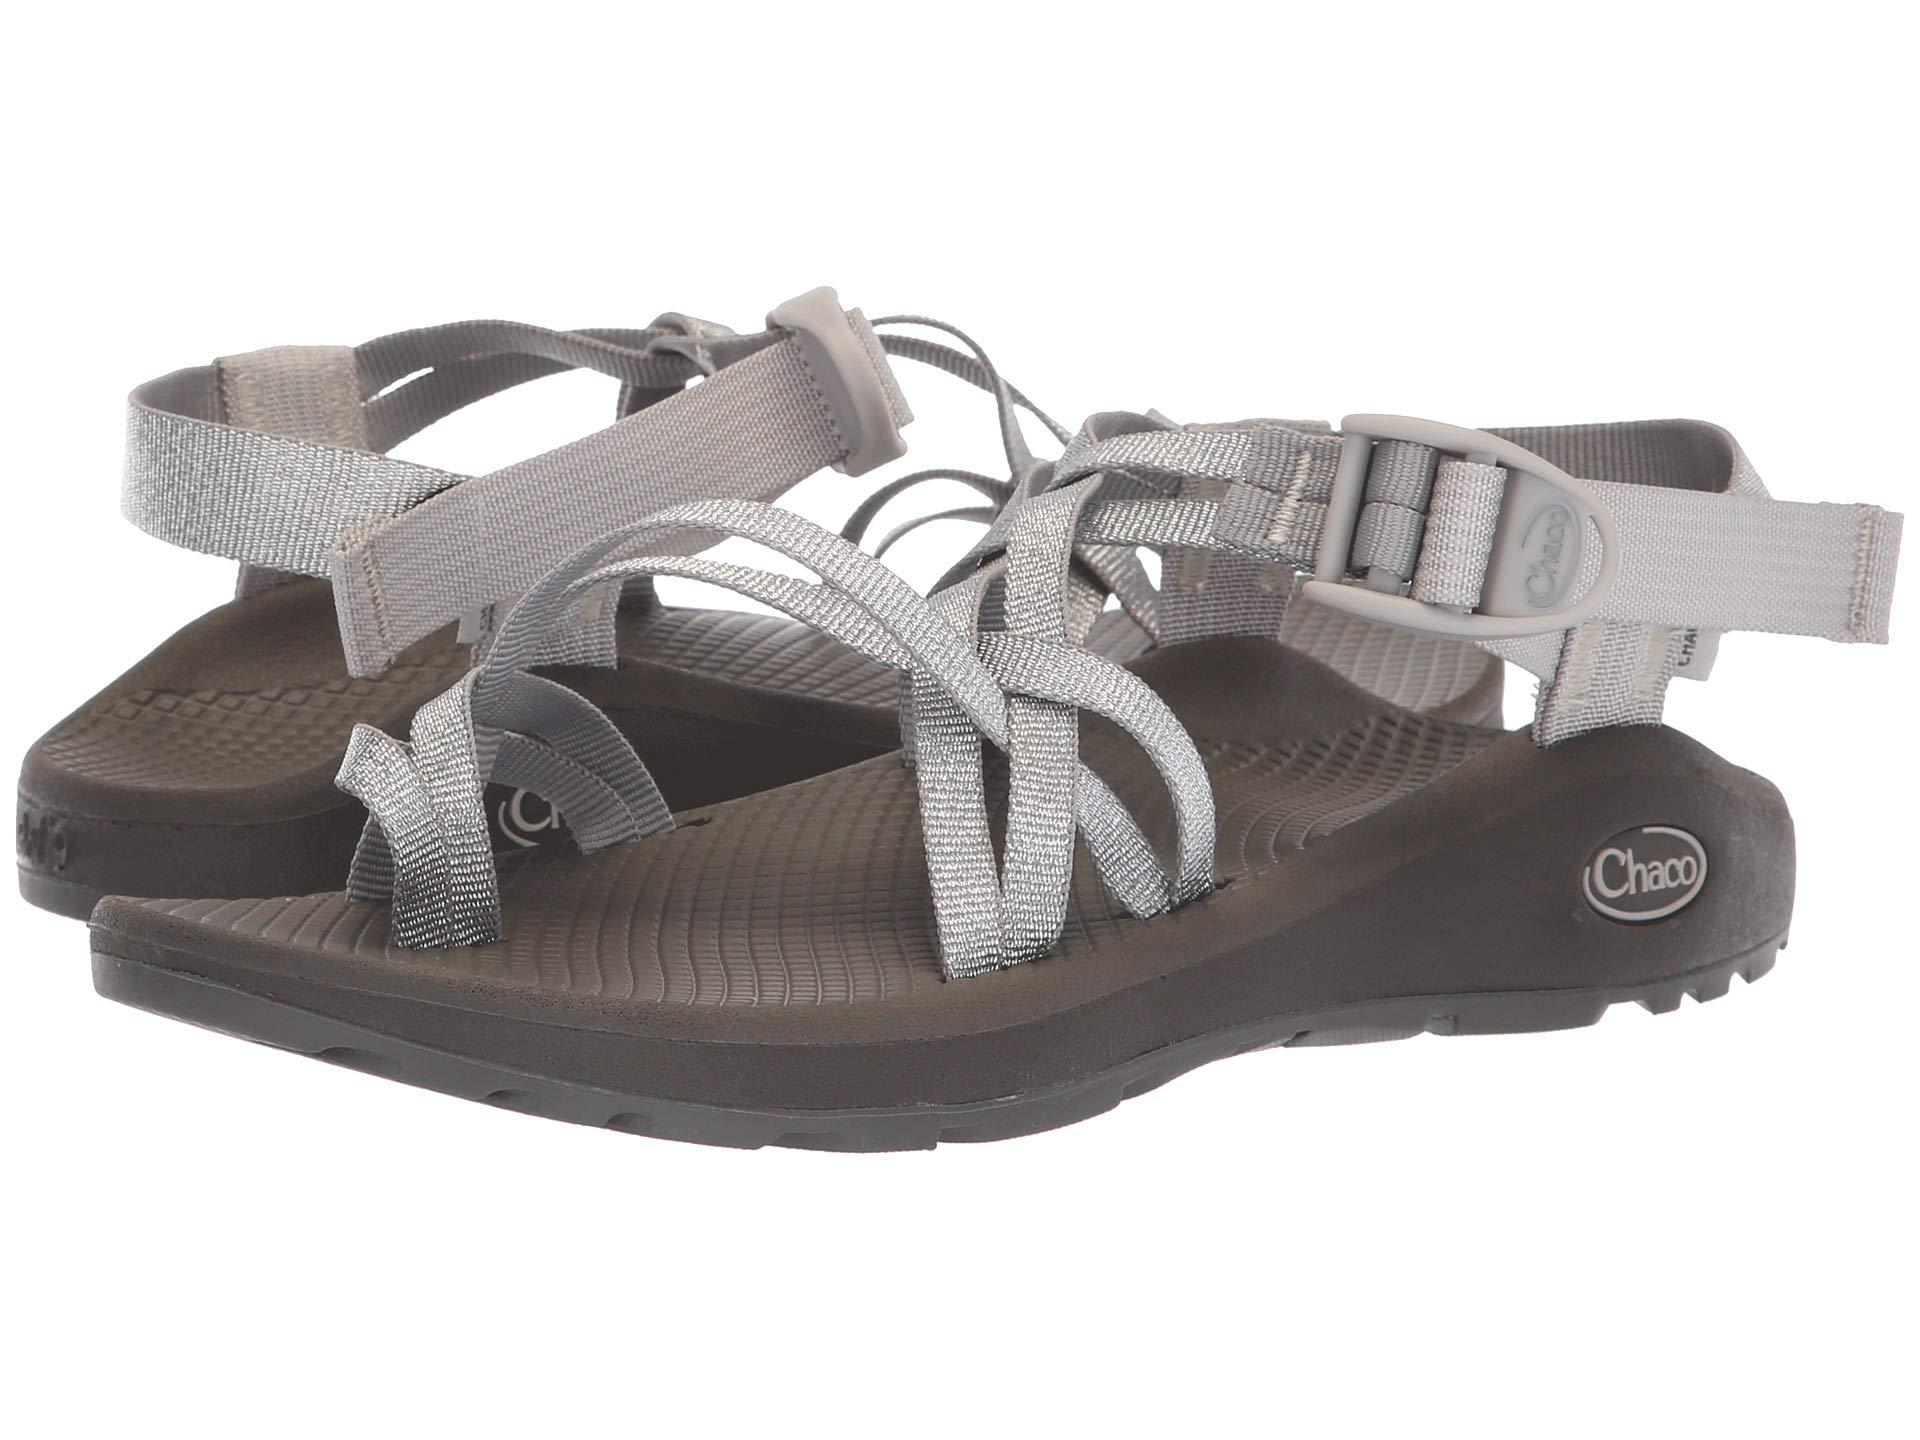 Chaco Synthetic Z/cloud X2 Sandal in